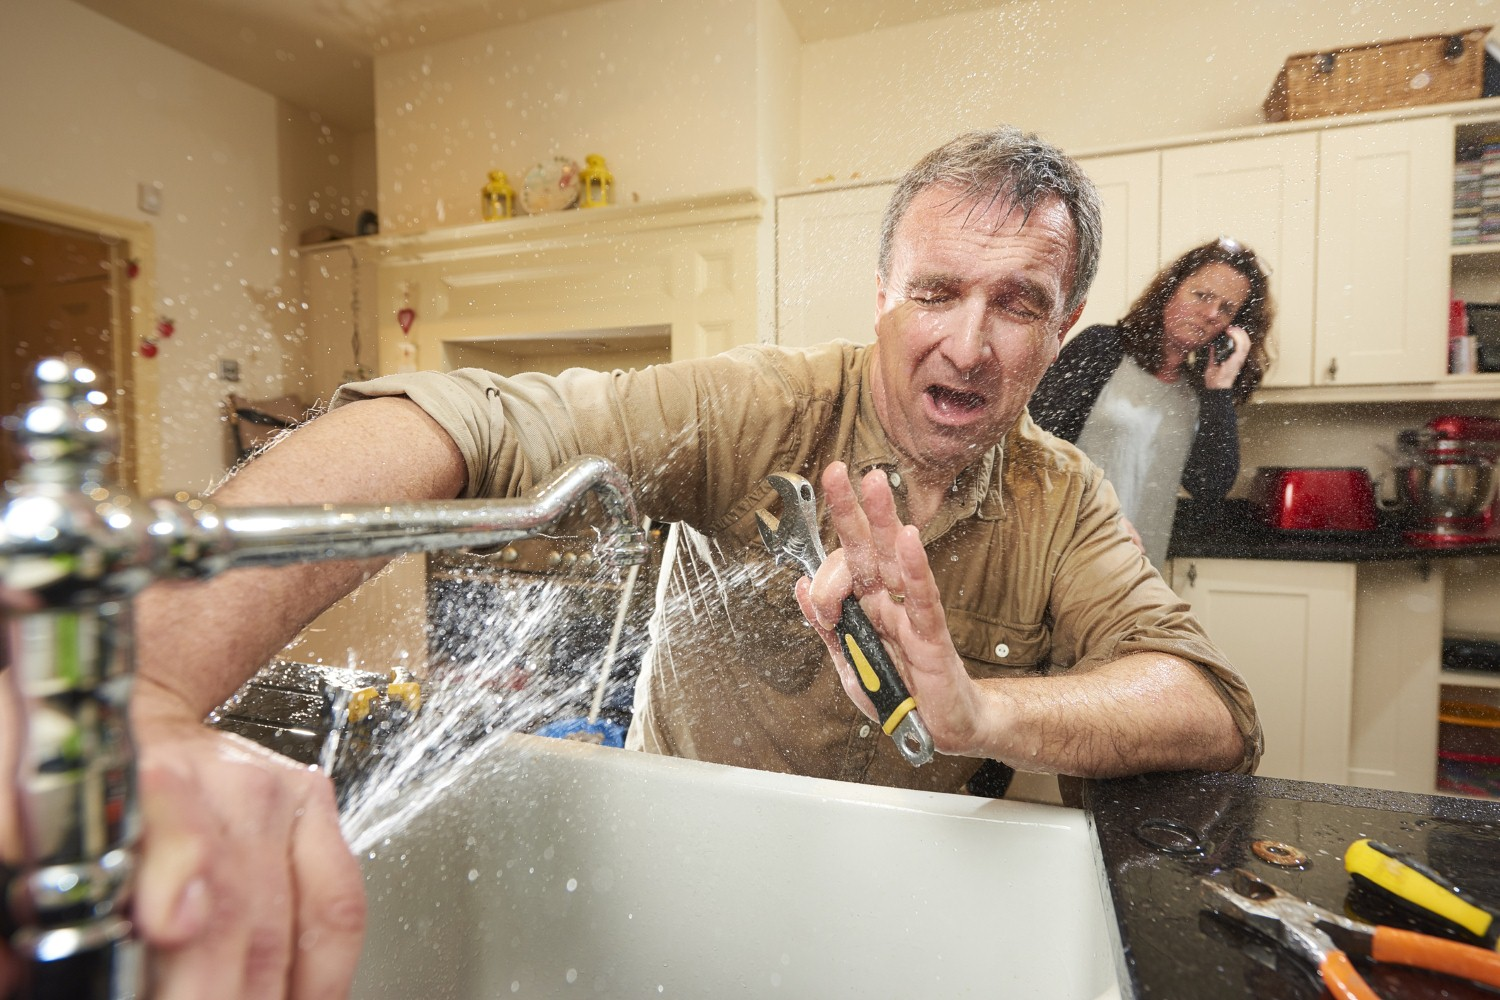 Quarter of tenants would not tell their landlord about property damage [Photo: sturti via iStock]